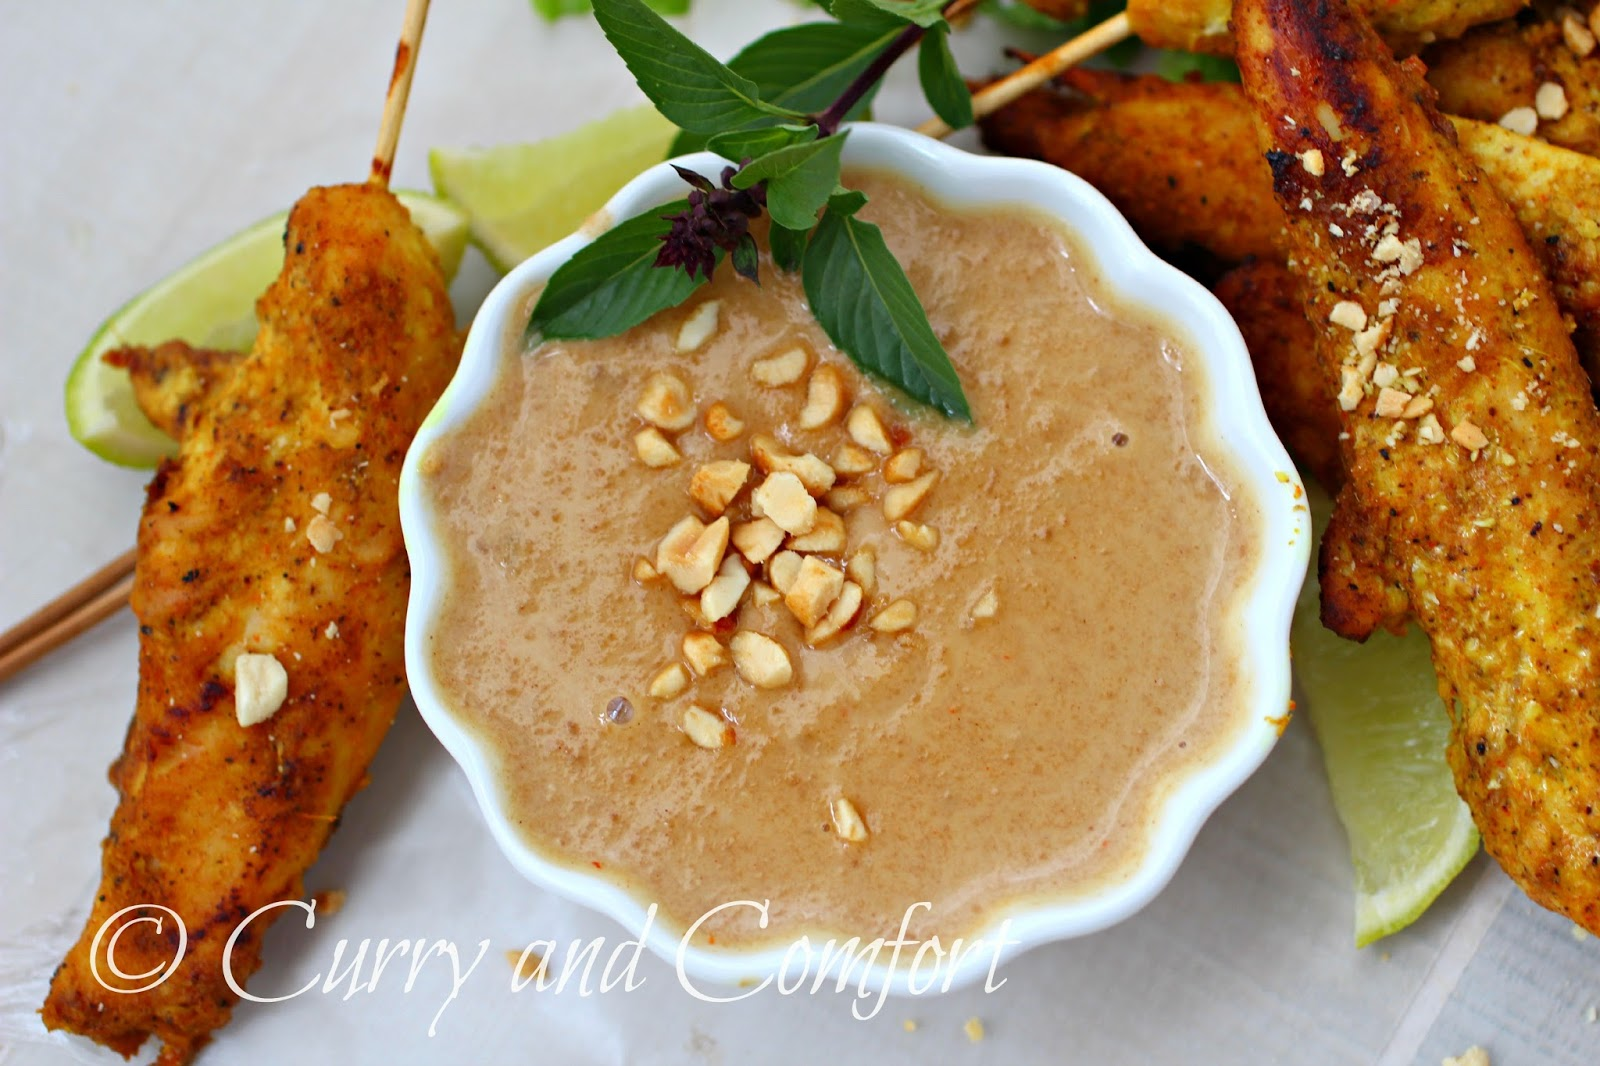 peanut sauce grilled curried chicken skewers with spicy peanut sauce ...